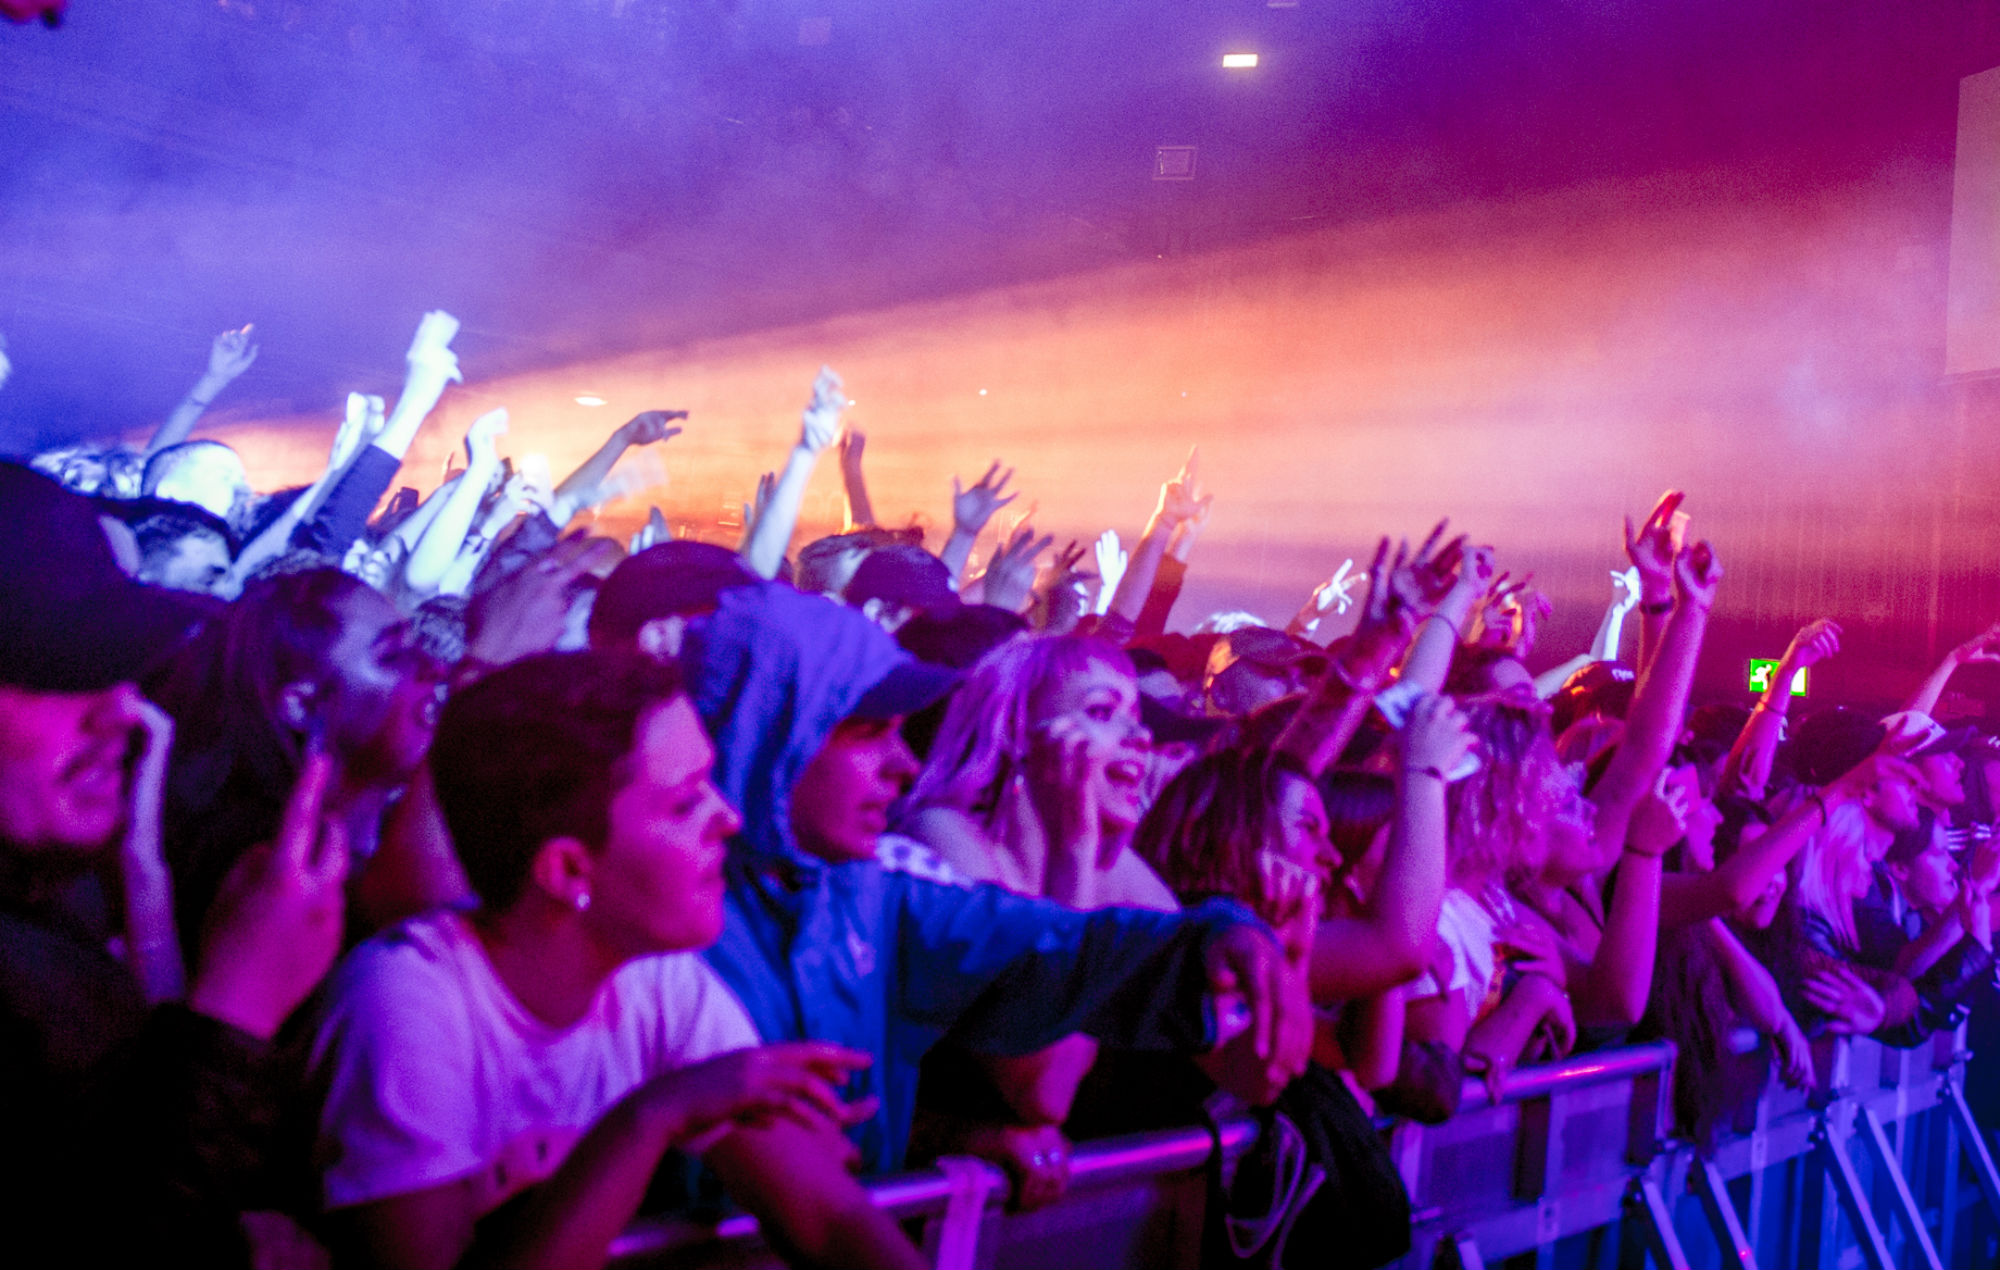 """A second study finds that music venues """"are not places of infection"""" for COVID-19 2"""